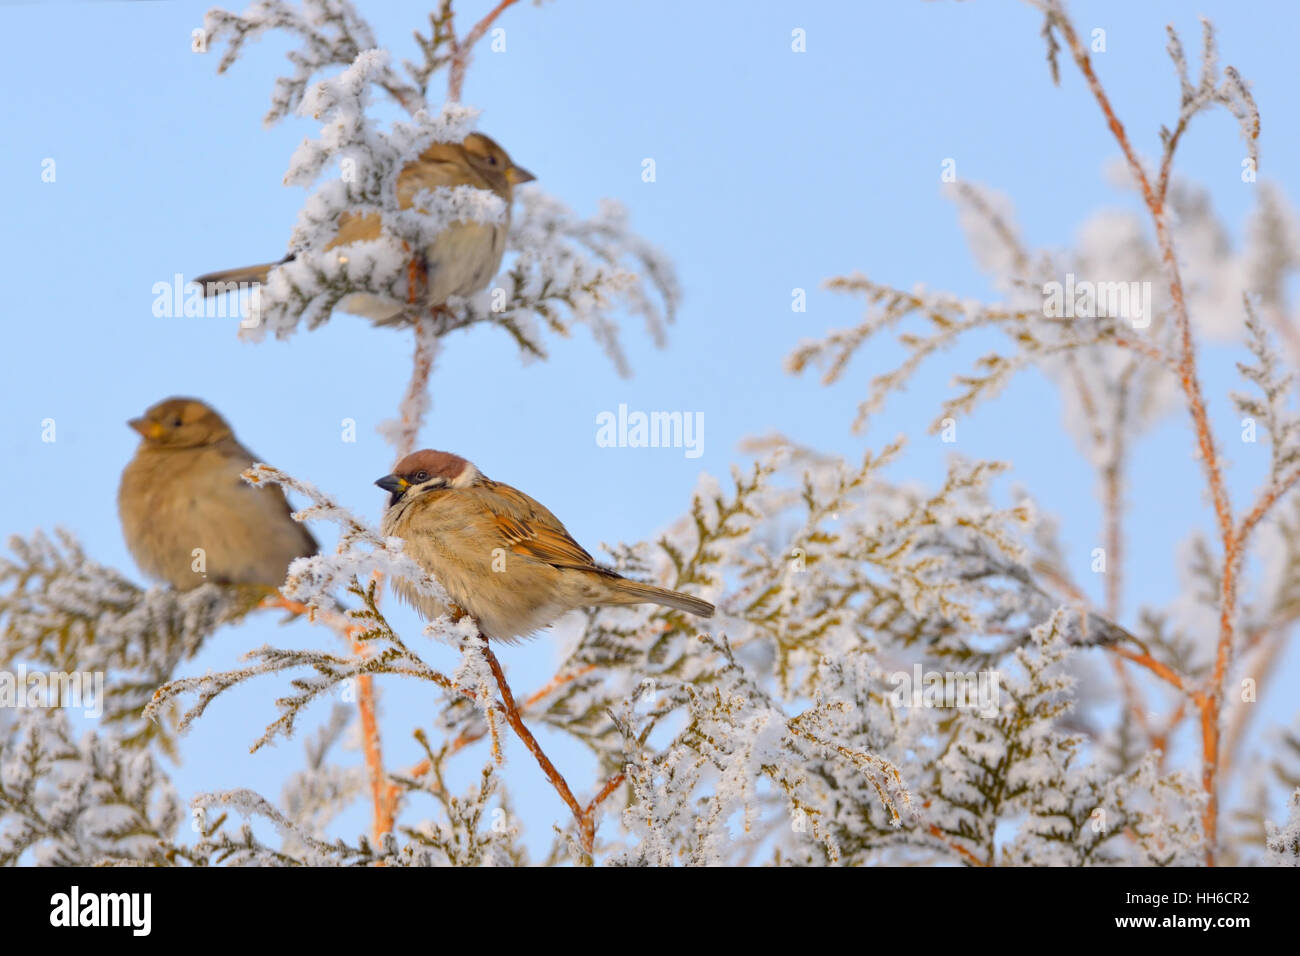 Little Sparrows on pine tree branch in winter - Stock Image